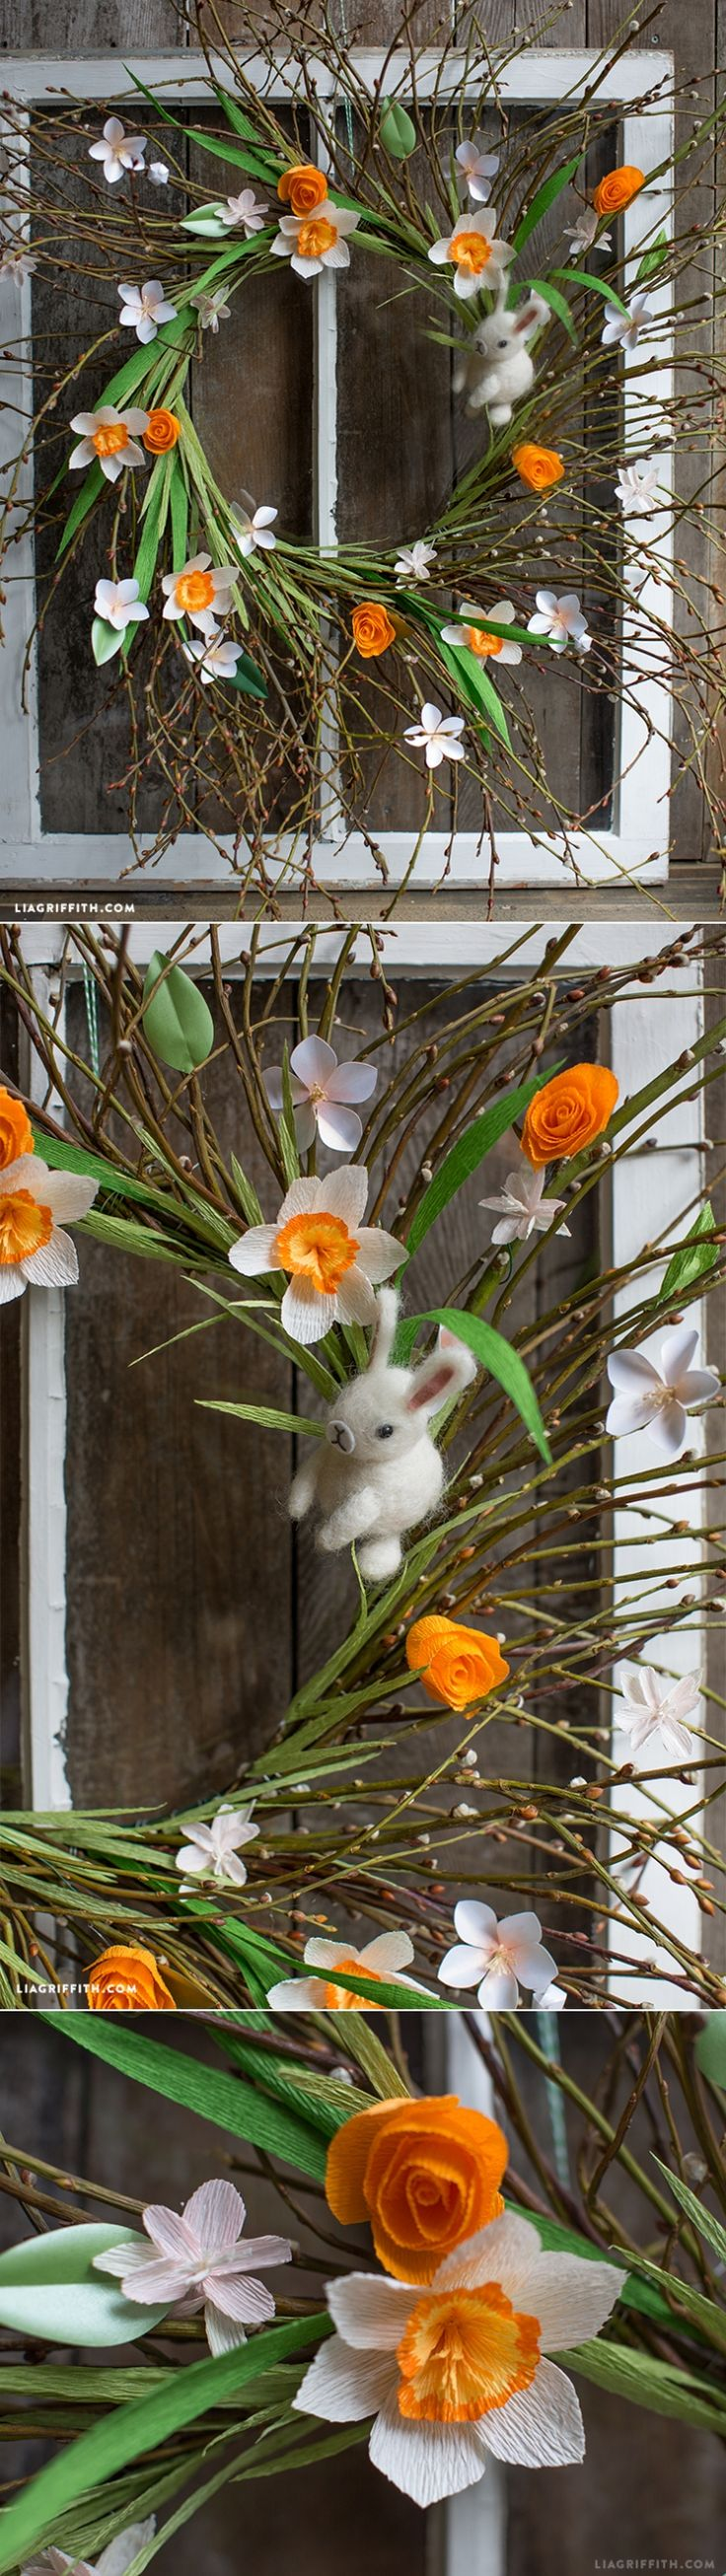 DIY : Create Your Own Spring Wreath and learn how to make paper flowers for it | www.LiaGriffith.com: